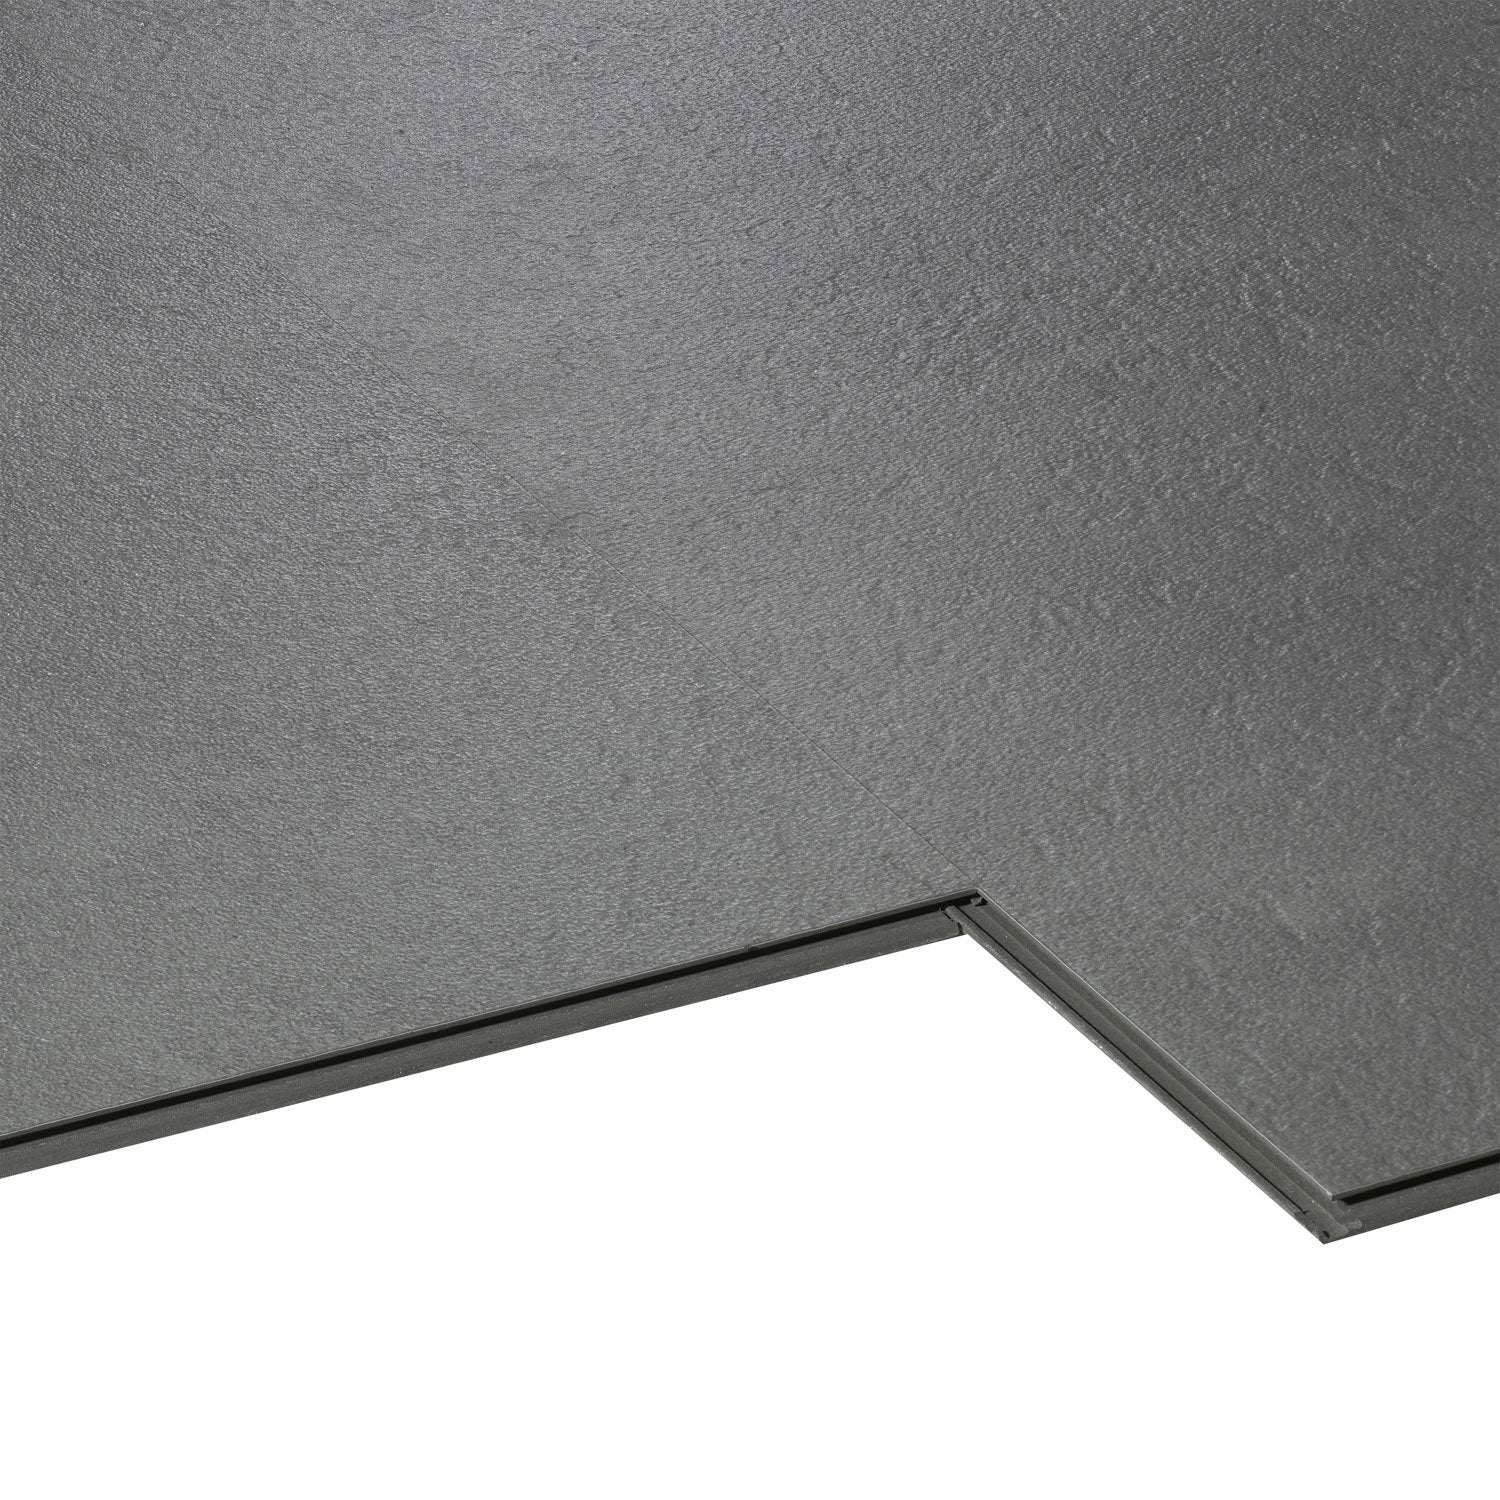 Dalle pvc clipsable gris styling aero city leroy merlin for Carrelage pour garage leroy merlin